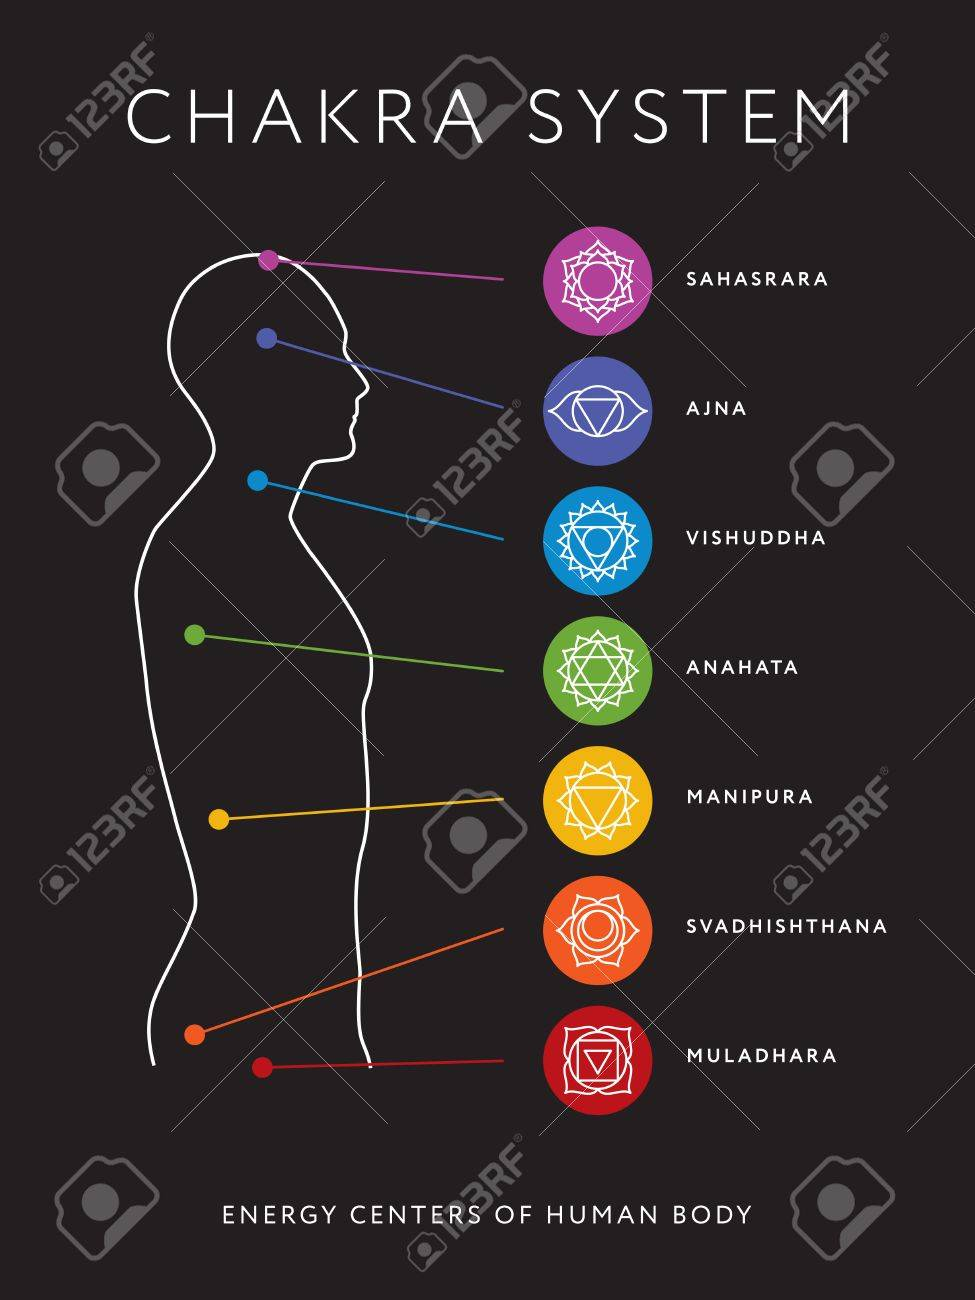 hight resolution of chakra system of human body chart seven chakra symbols location information of each chakra